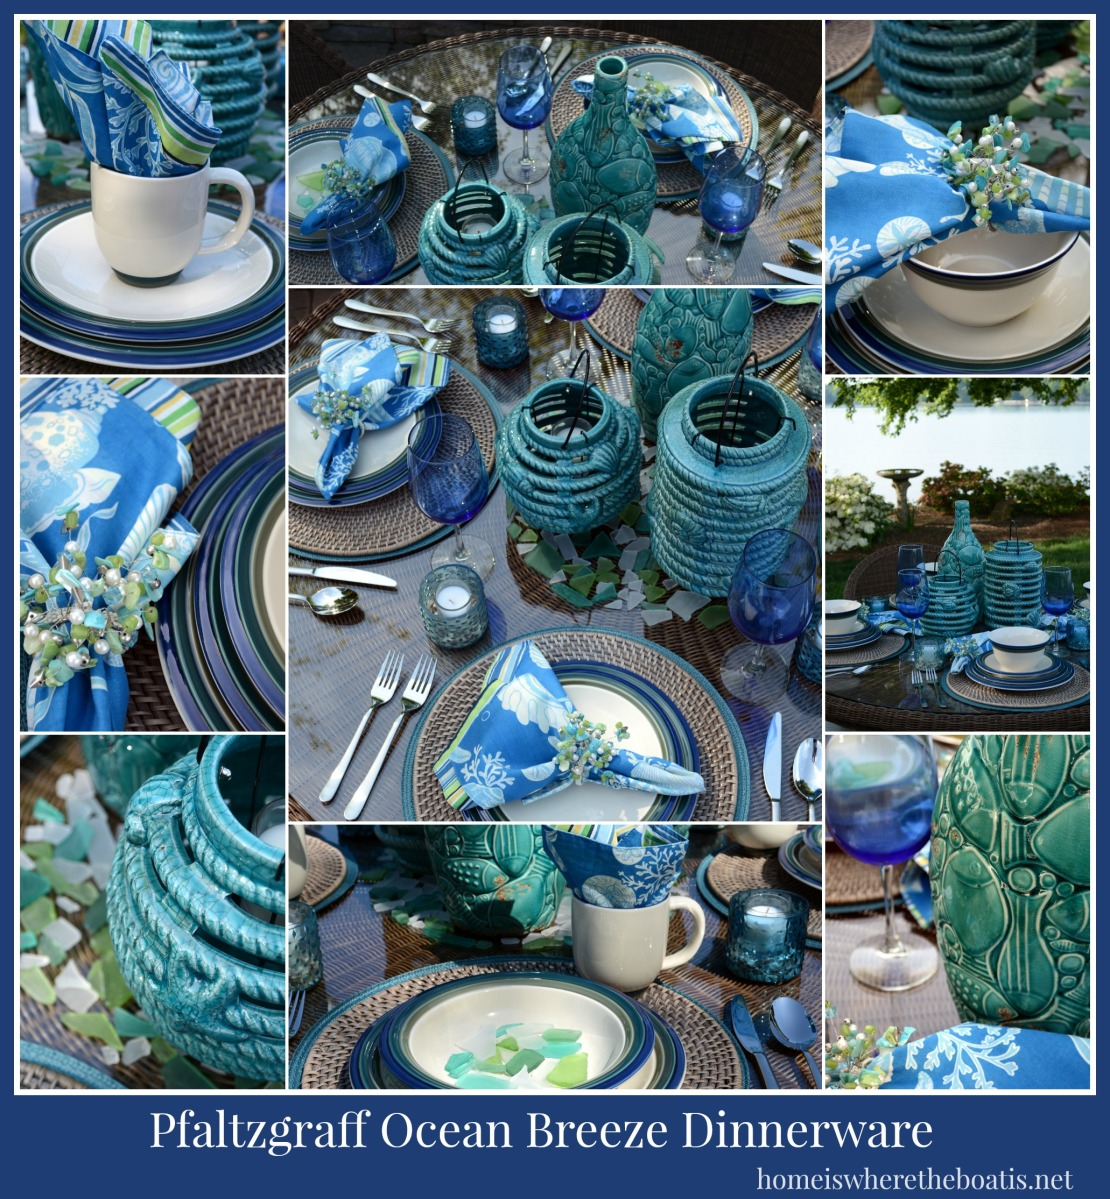 At The Table Pfaltzgraff Ocean Breeze Home Is Where The Boat Is